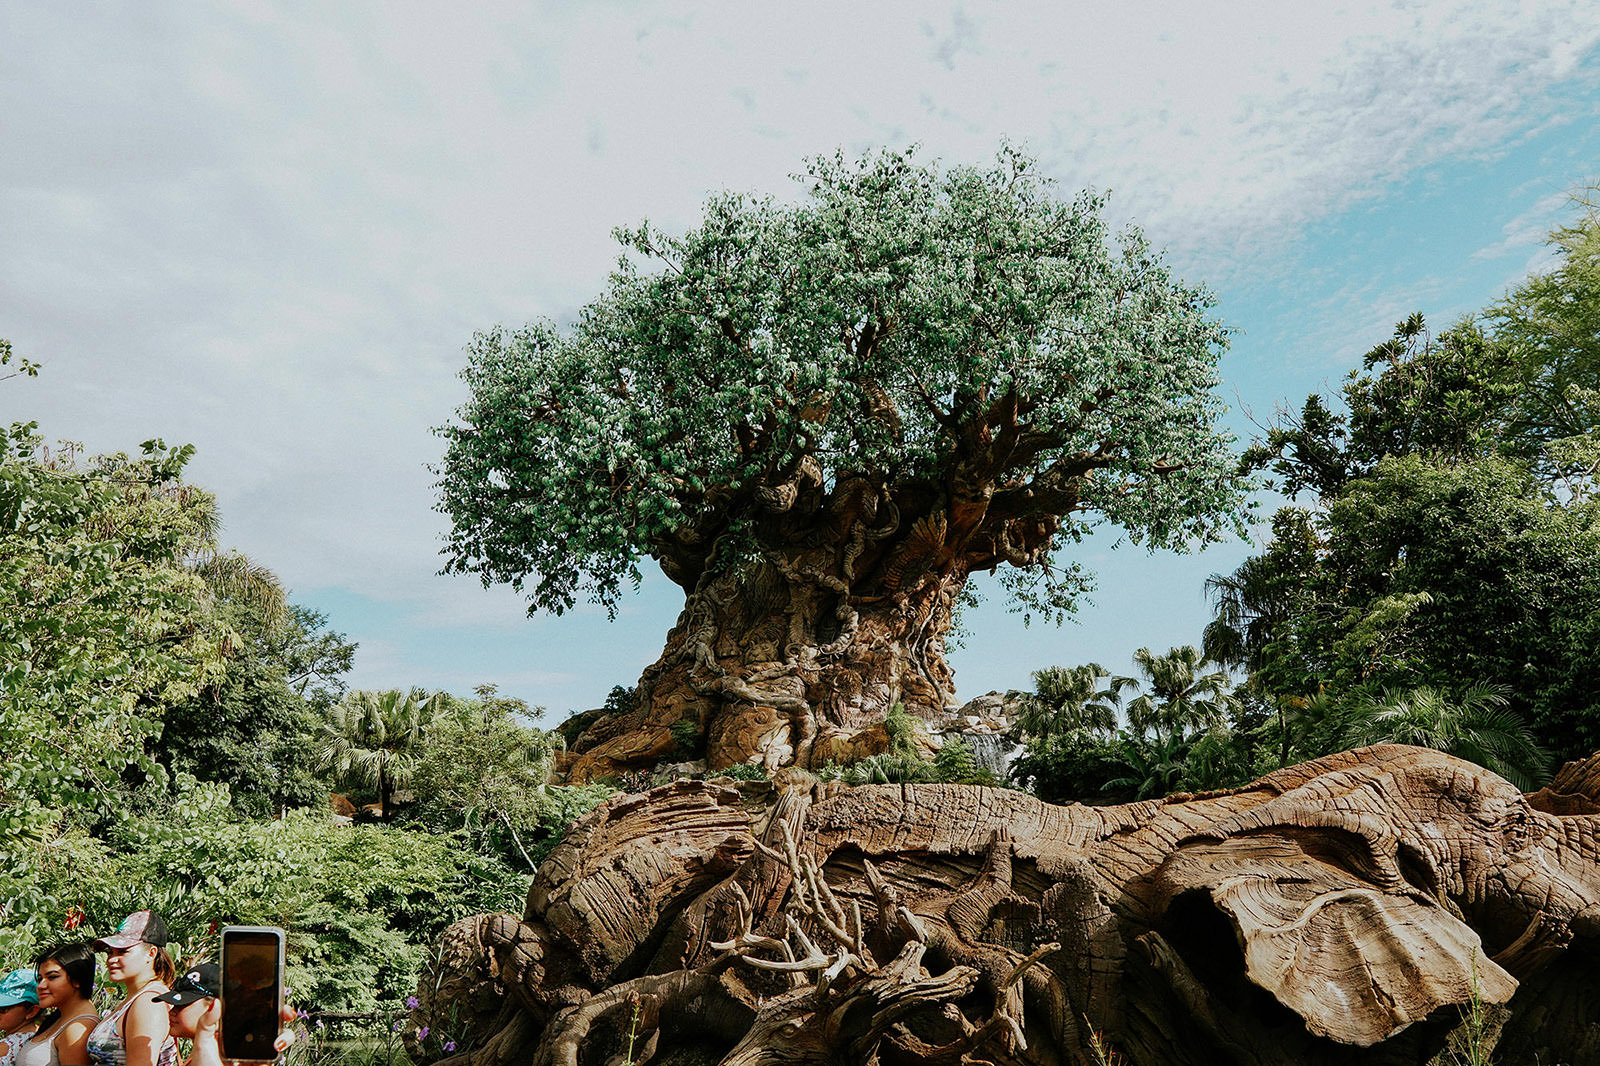 tree of life Disney world animal kingdom